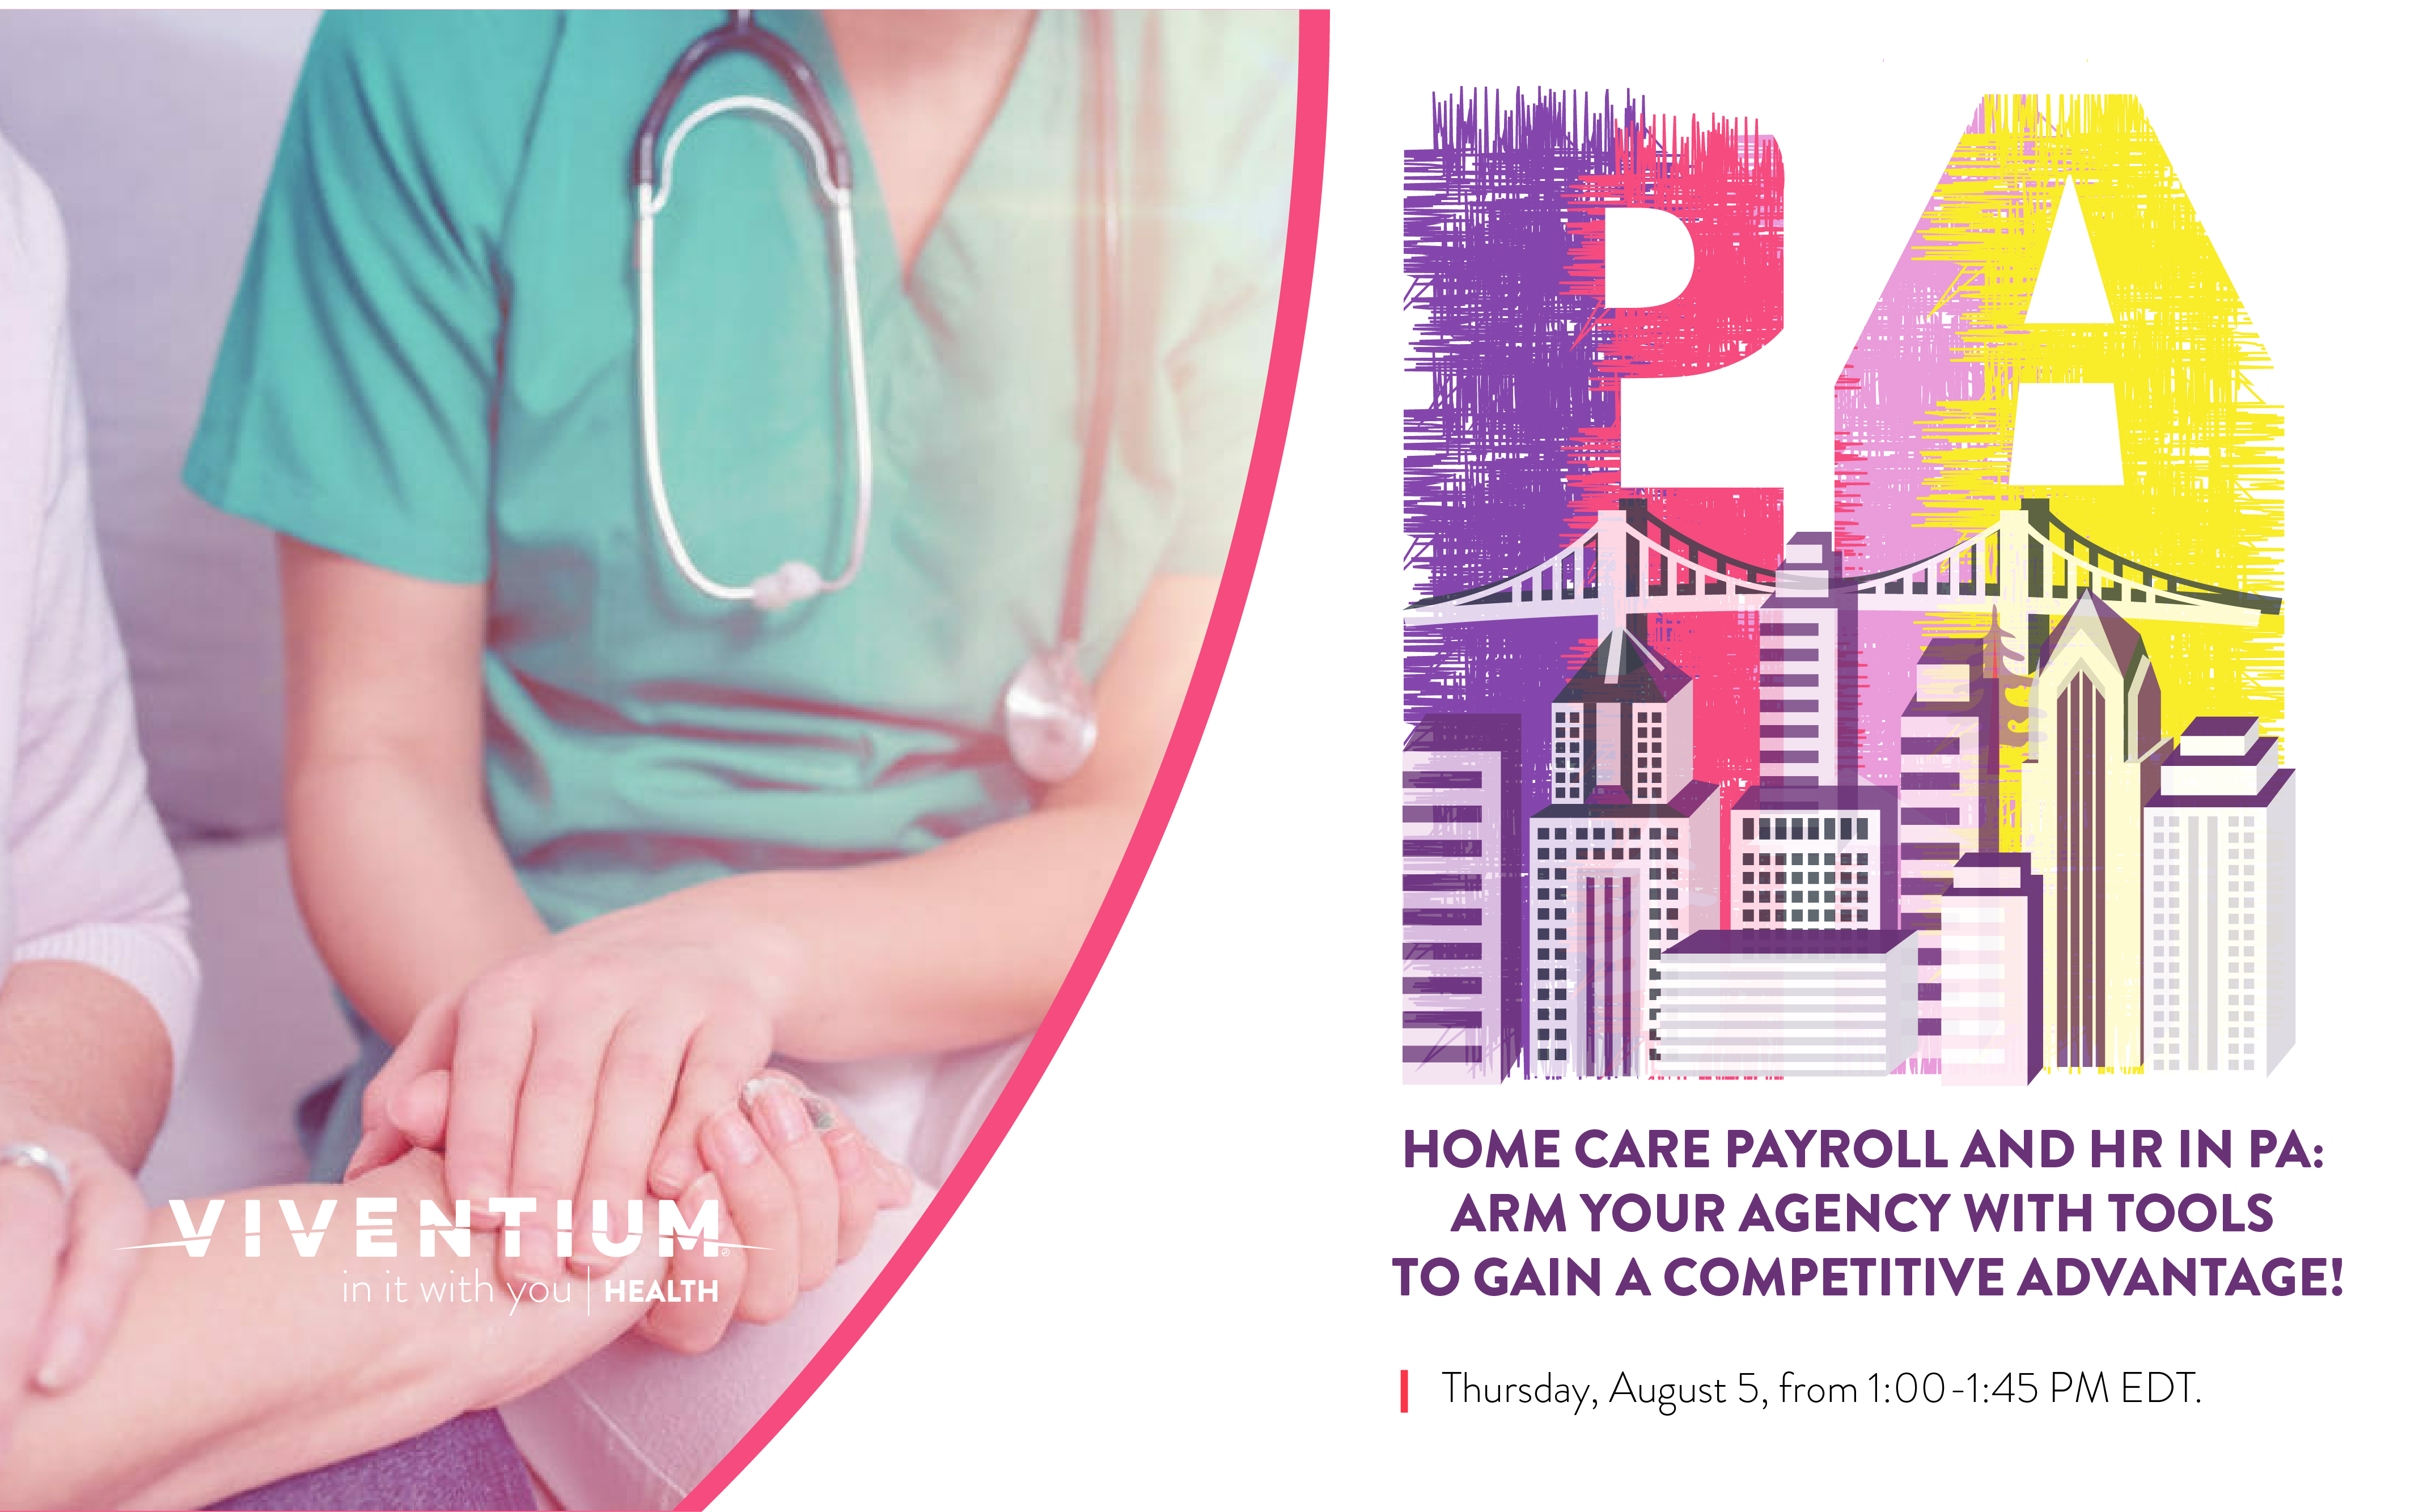 Home Care Payroll and HR in PA Image